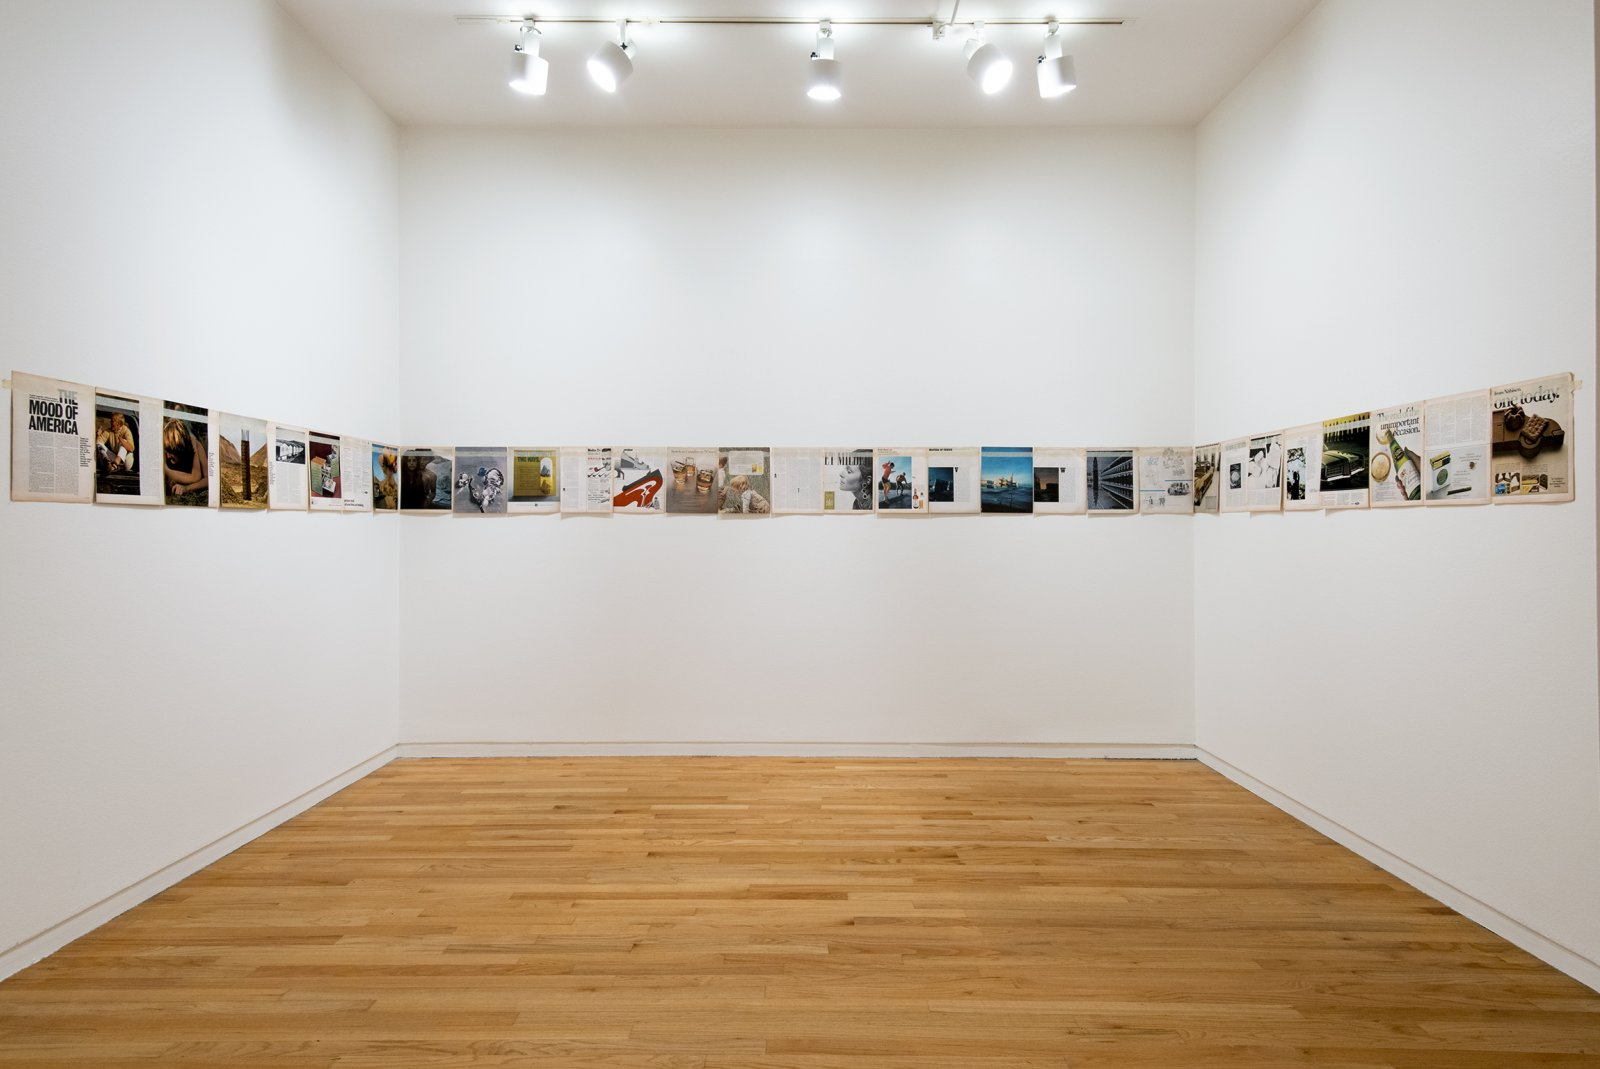 Ian Wallace, Magazine Piece (Look Magazine, November 18, 1969), 1969–2012, magazine pages, tape, dimensions variable. Installation view, A Literature of Images, Vancouver Art Gallery, 2012 by Ian Wallace